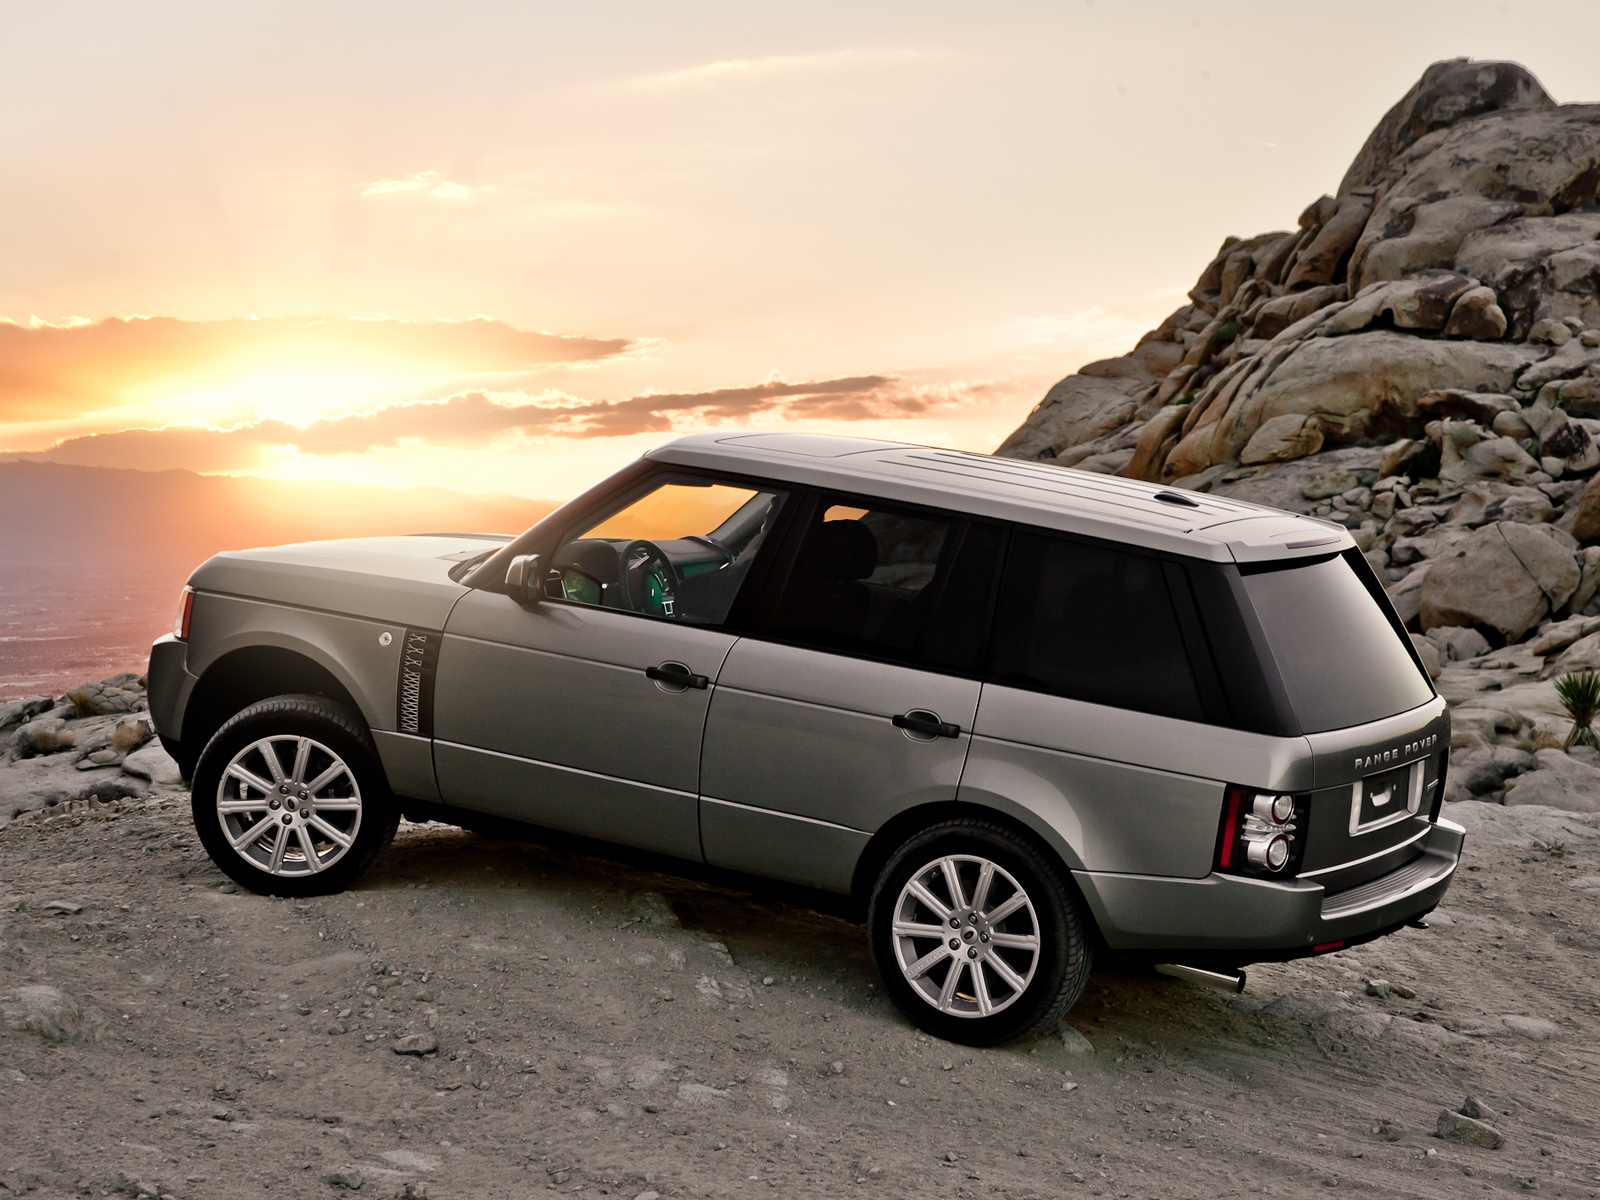 Pictures of land rover range rover #6